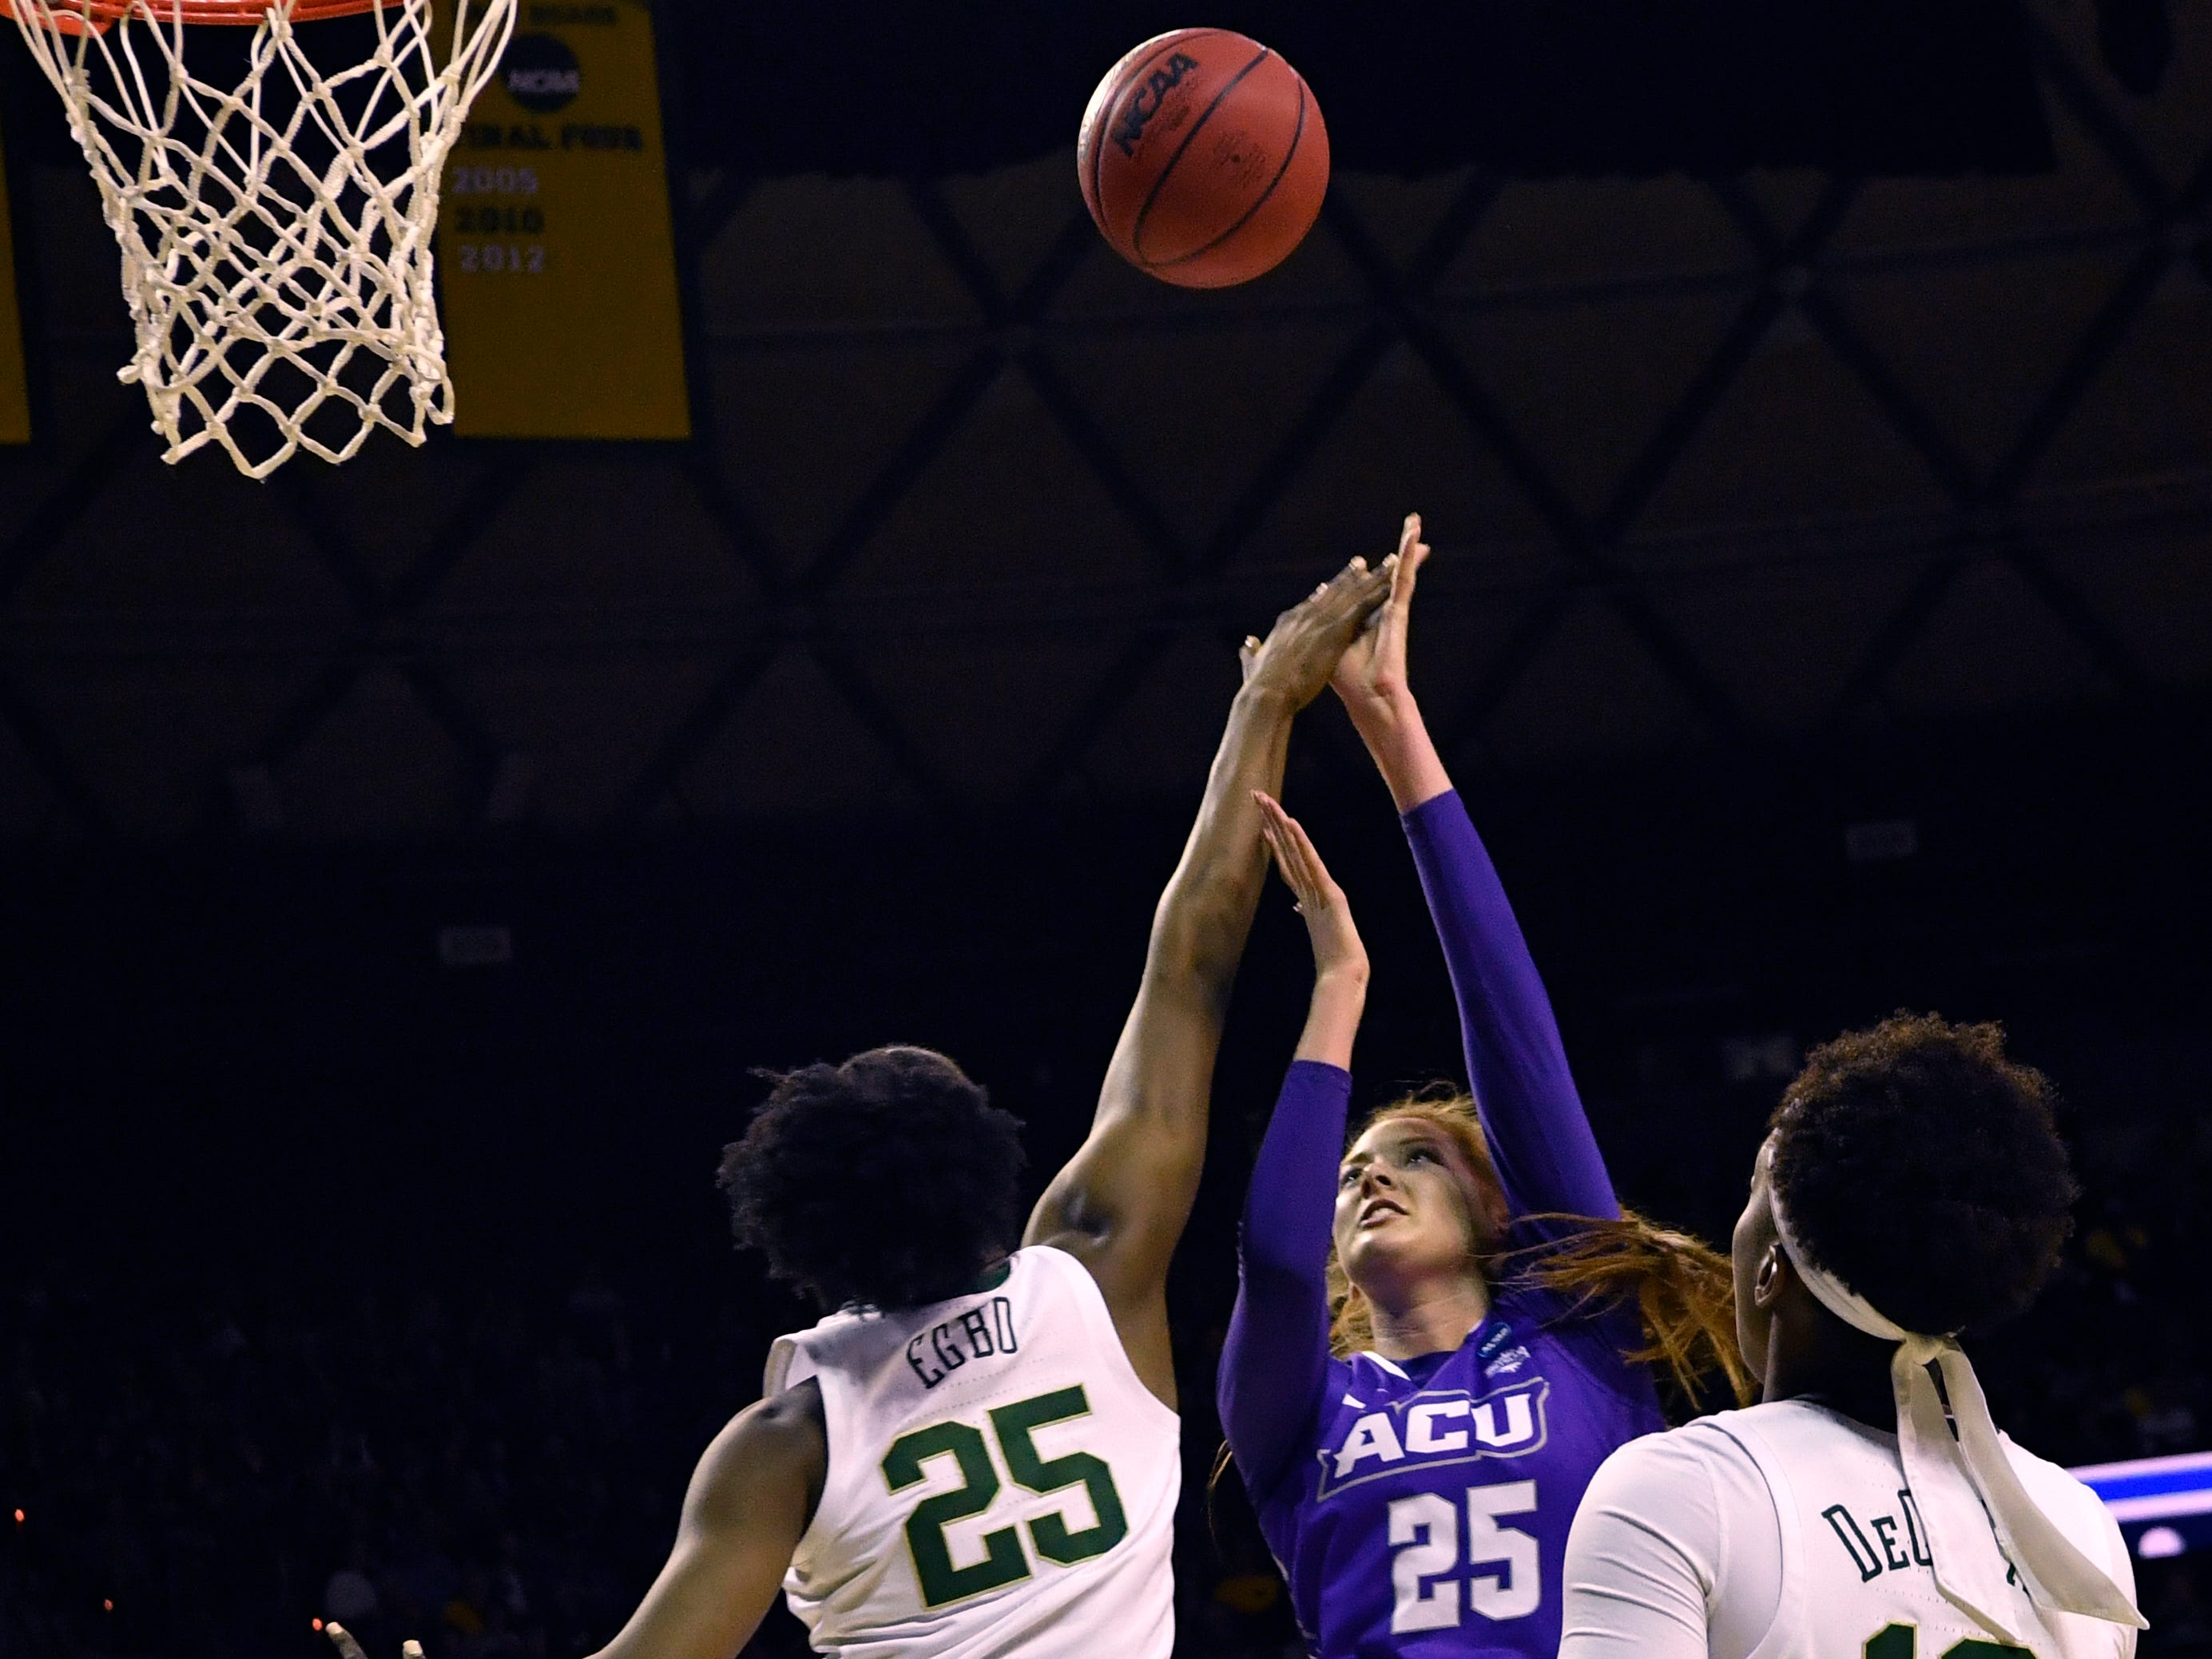 ACU's Lexi Kirgan tries for a basket past Baylor's Queen Egbo during Saturday's NCAA Tournament women's round 1 basketball game March 23, 2019. Baylor defeated Abilene Christian University, 95-38.